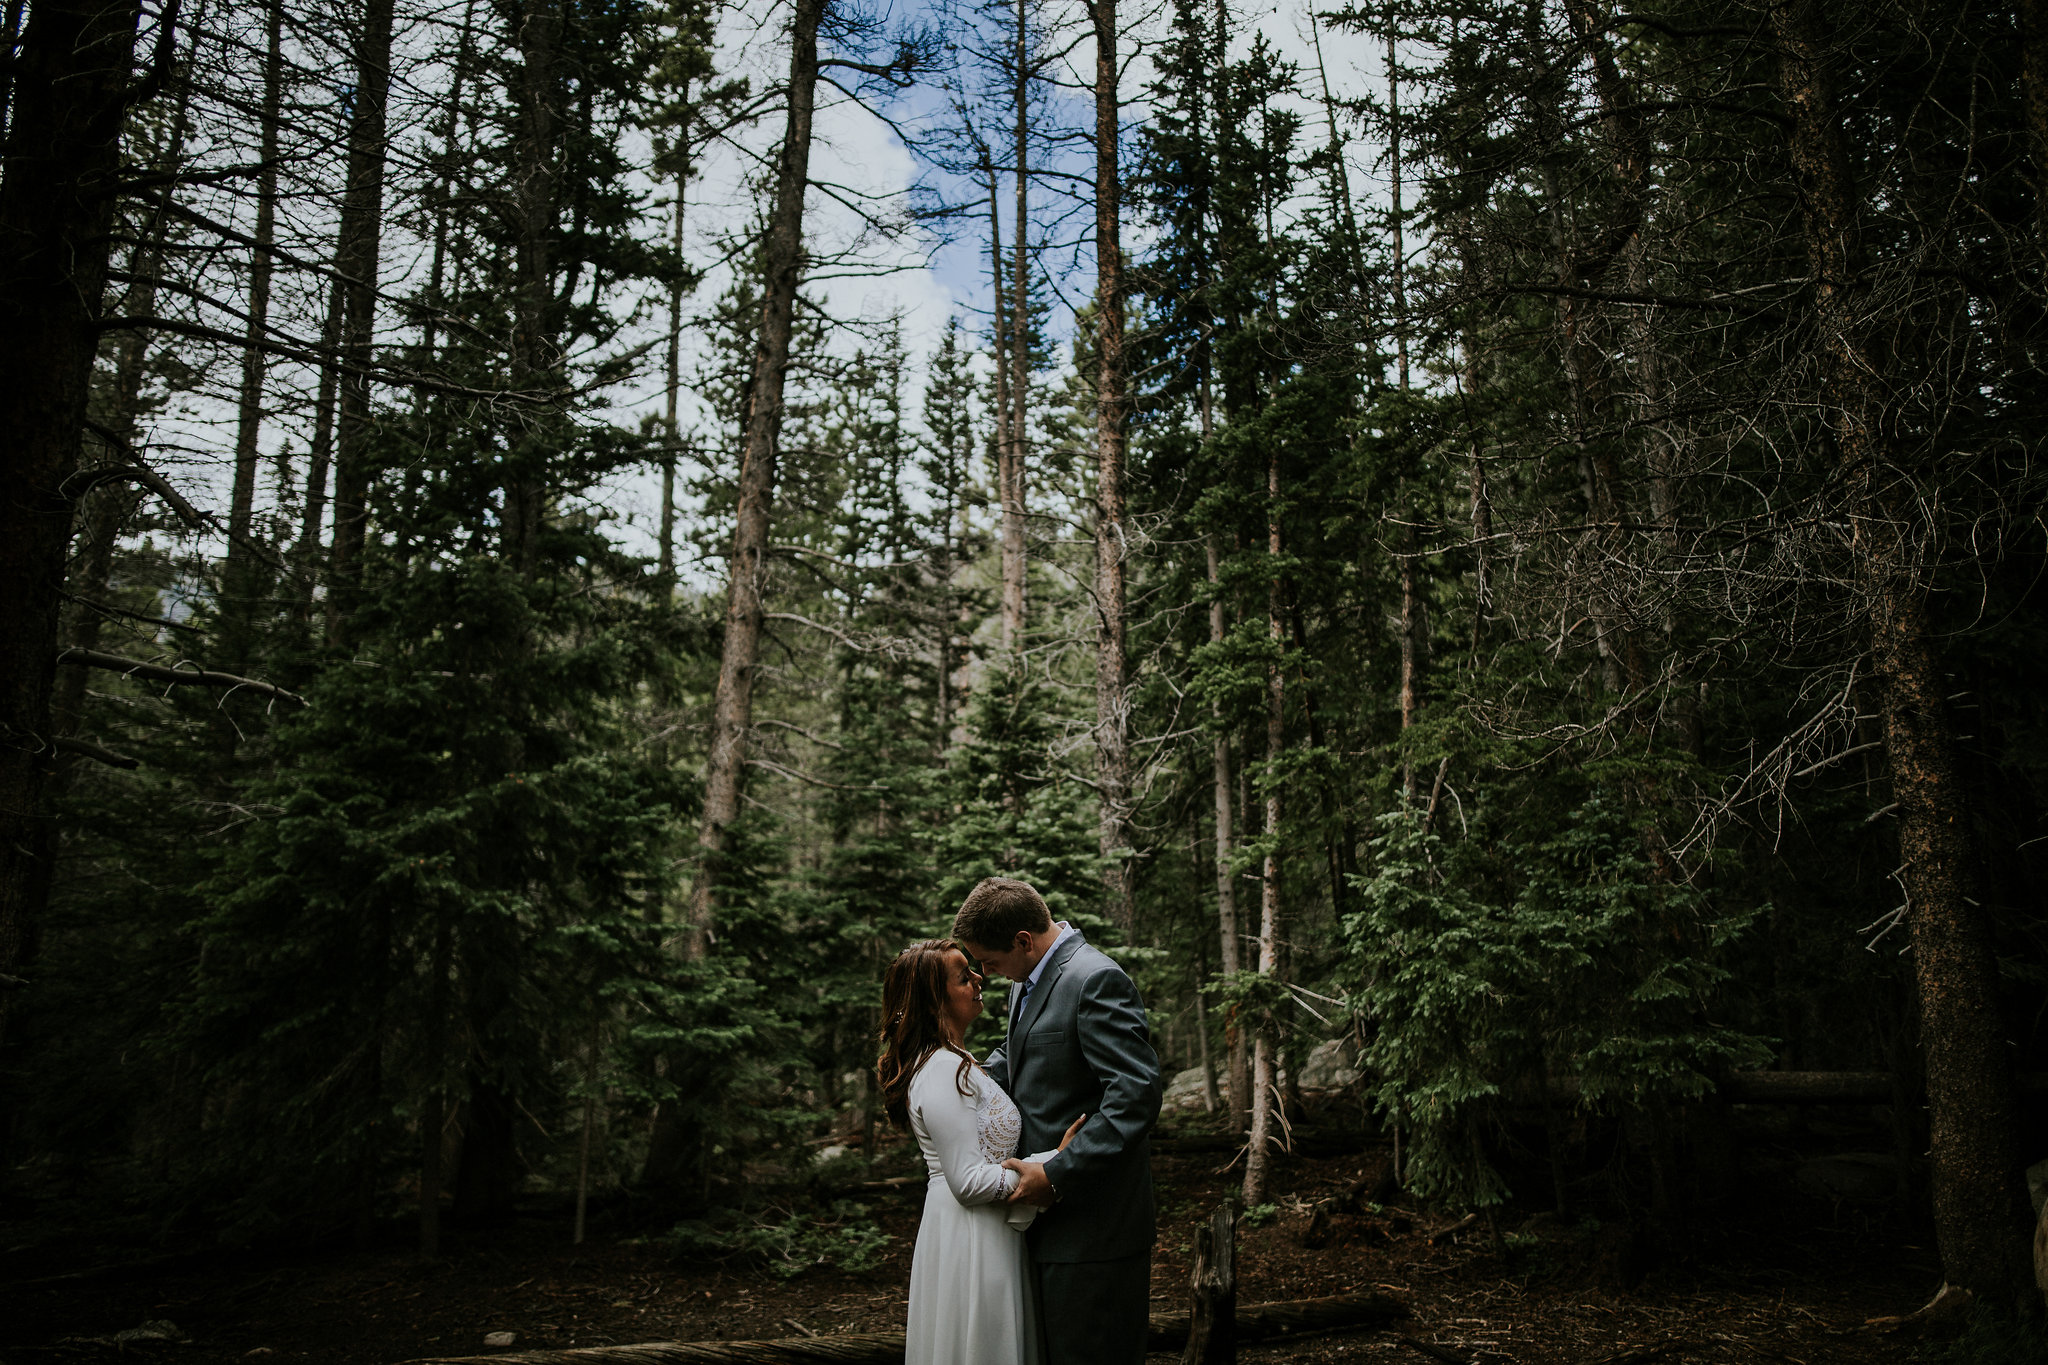 Elle + Ben | Rocky Mountain National Park | Elopement Photo + Video